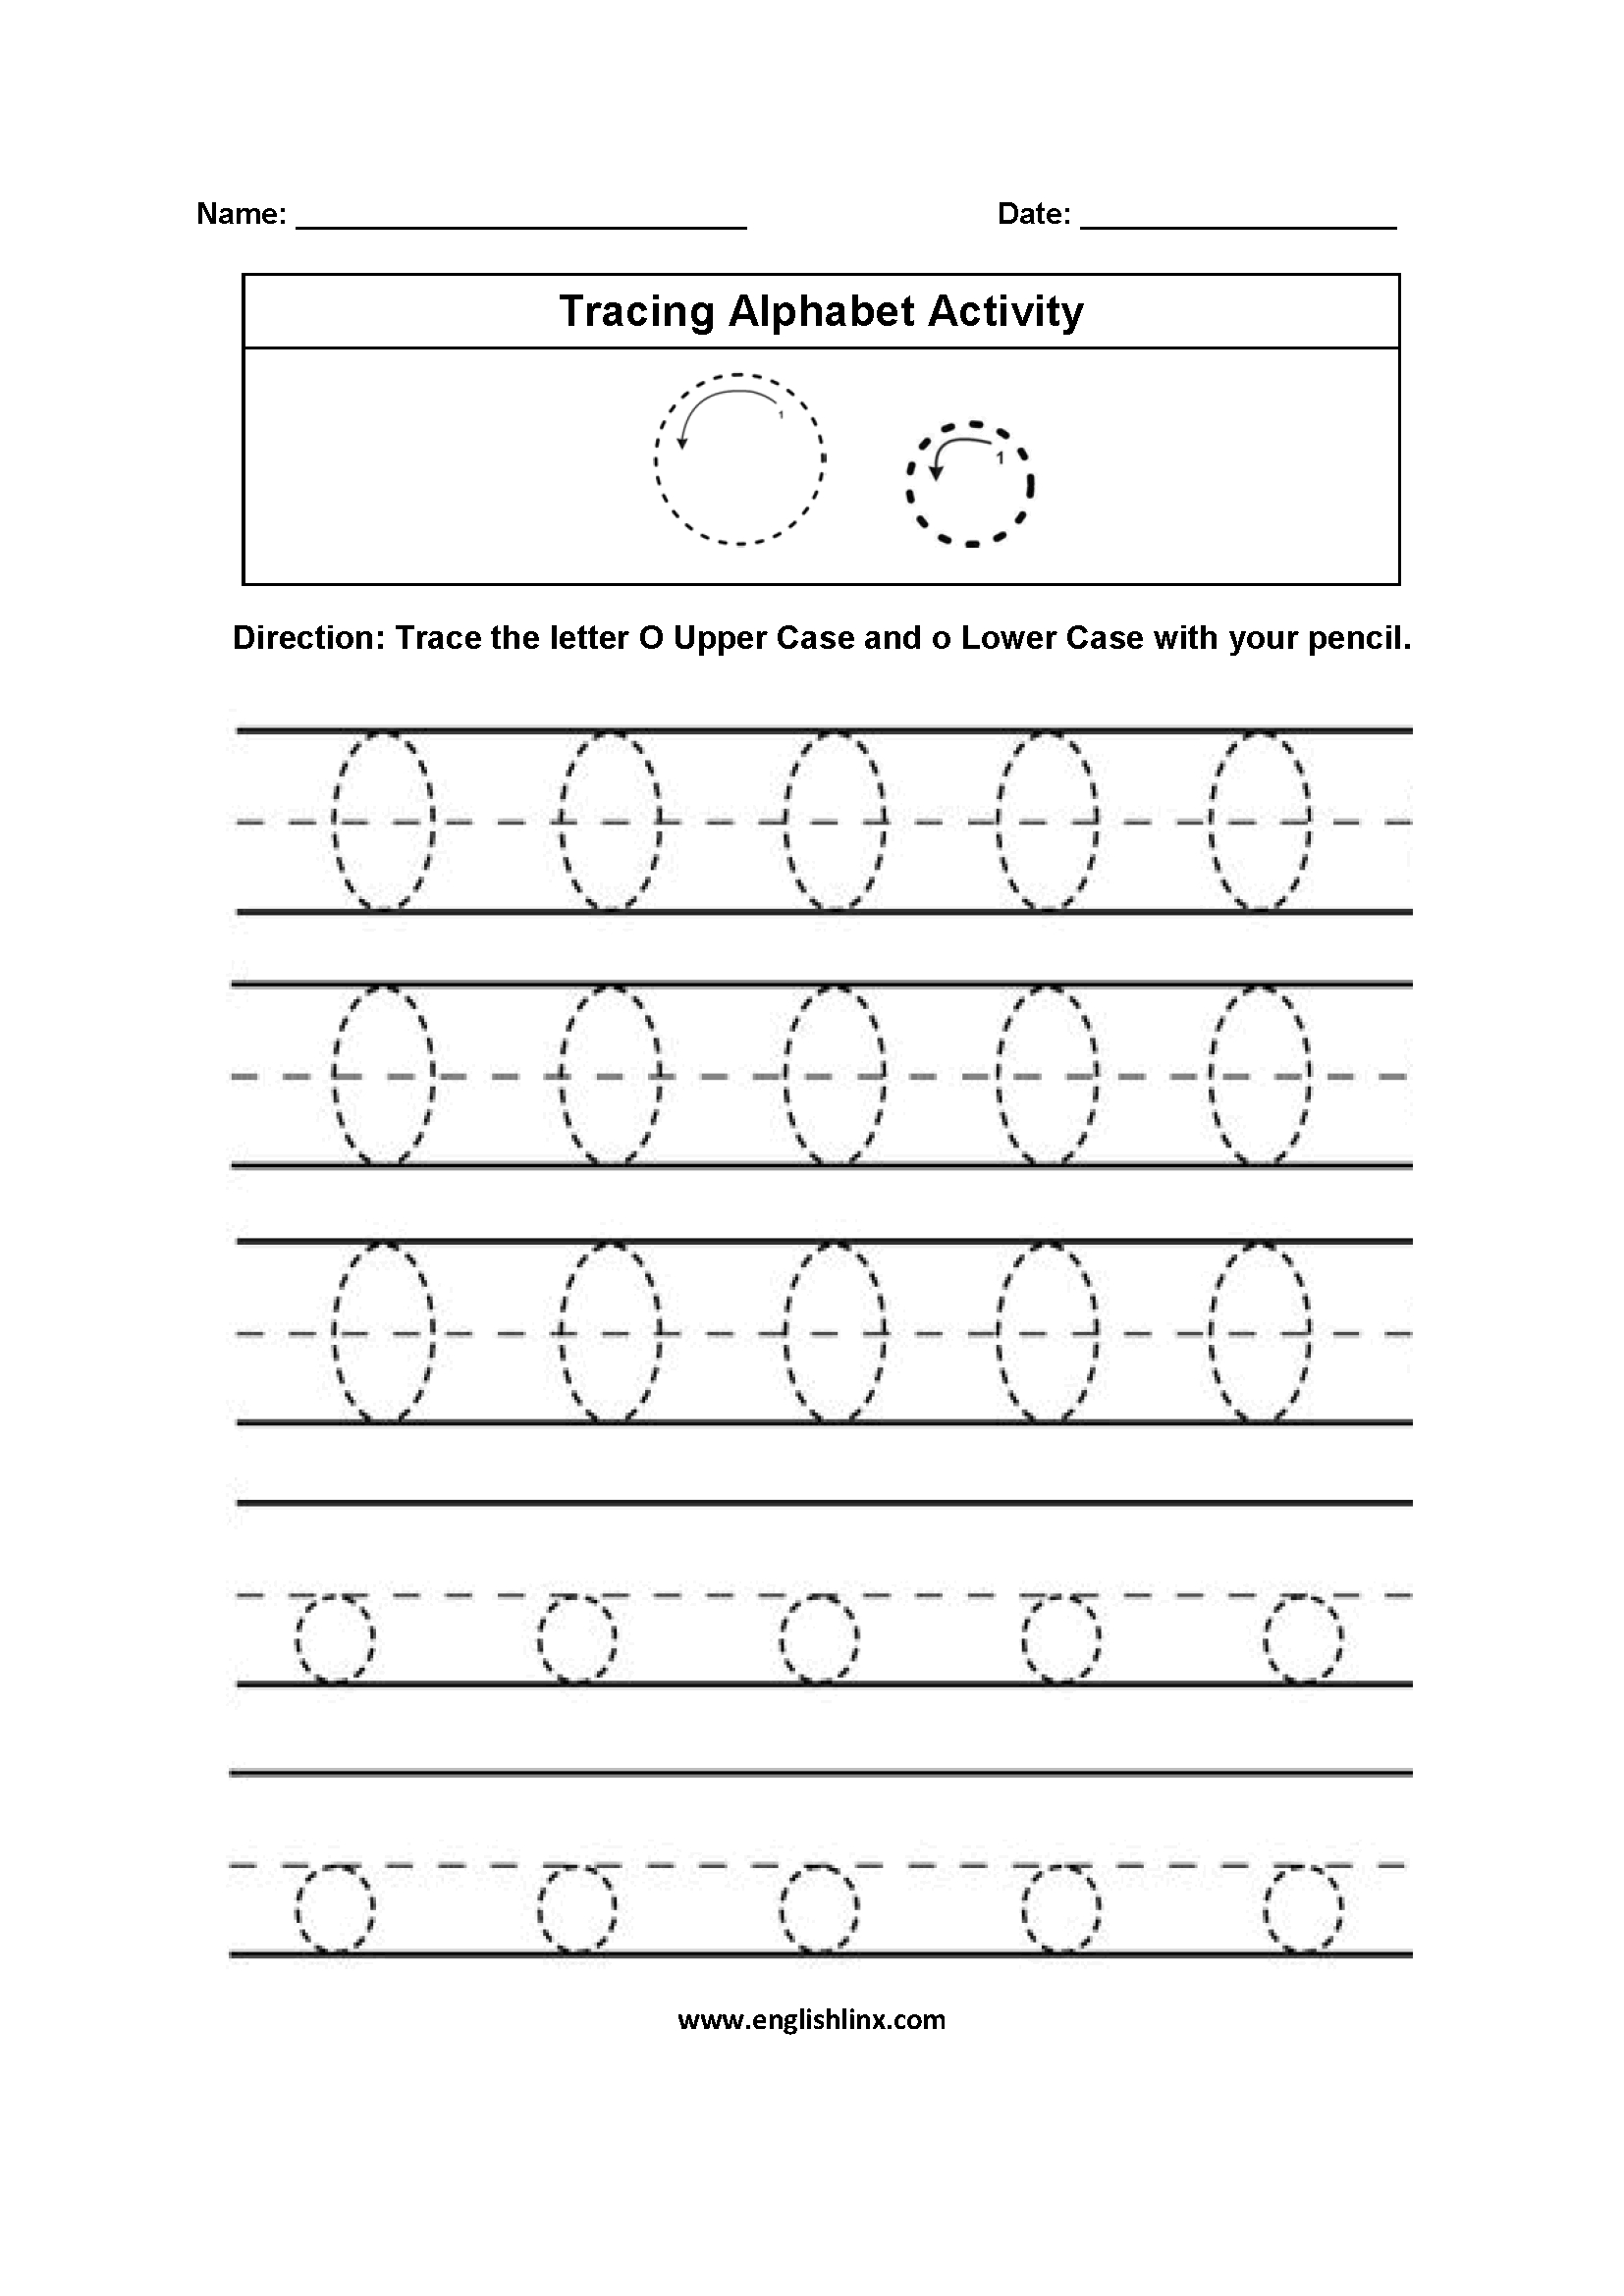 Alphabet Worksheets | Tracing Alphabet Worksheets with Letter O Tracing Sheet